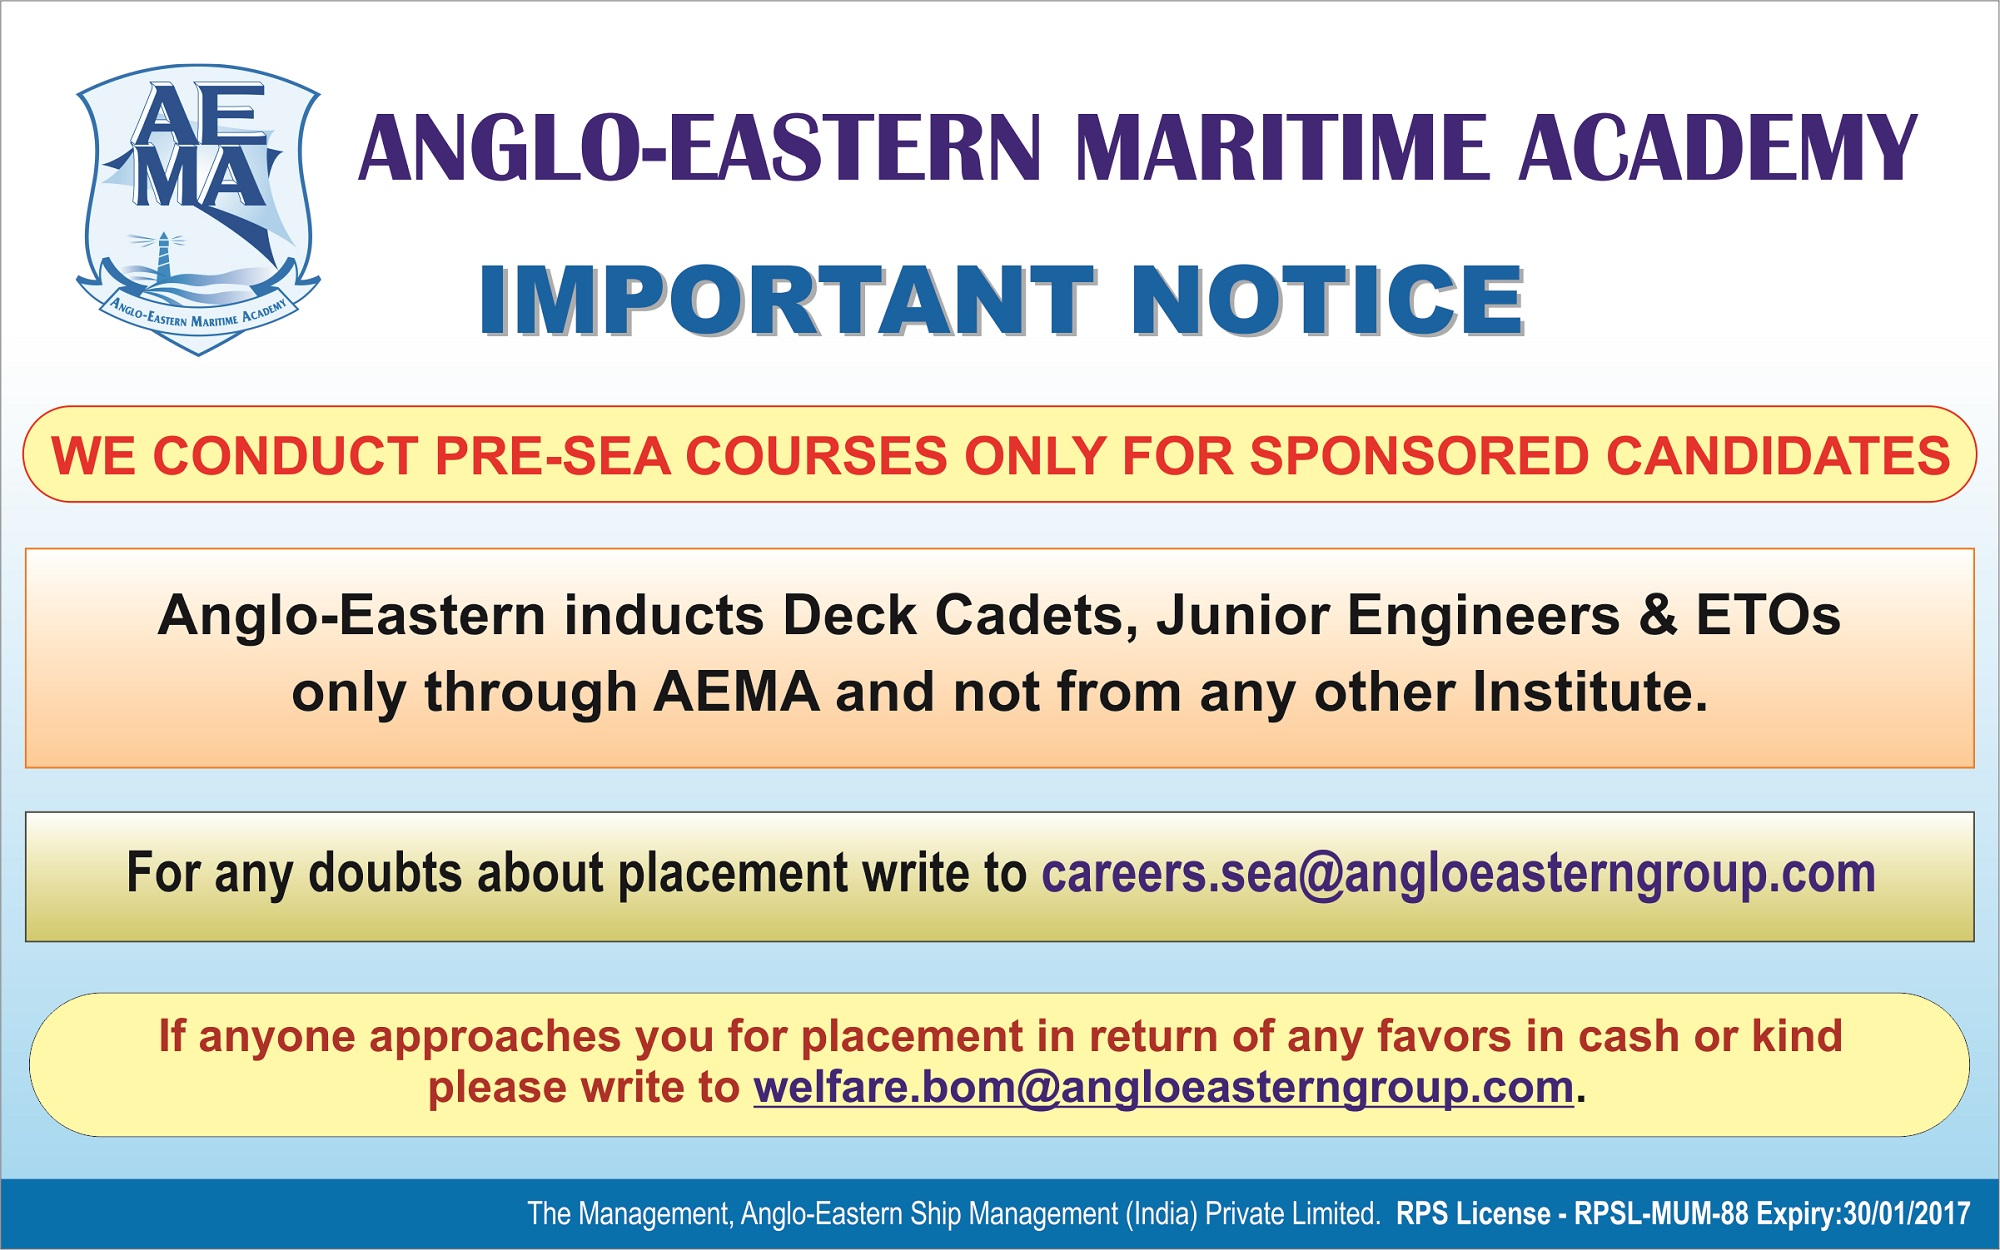 Anglo Eastern Maritime Academy Admission Notification for 2018 Batches